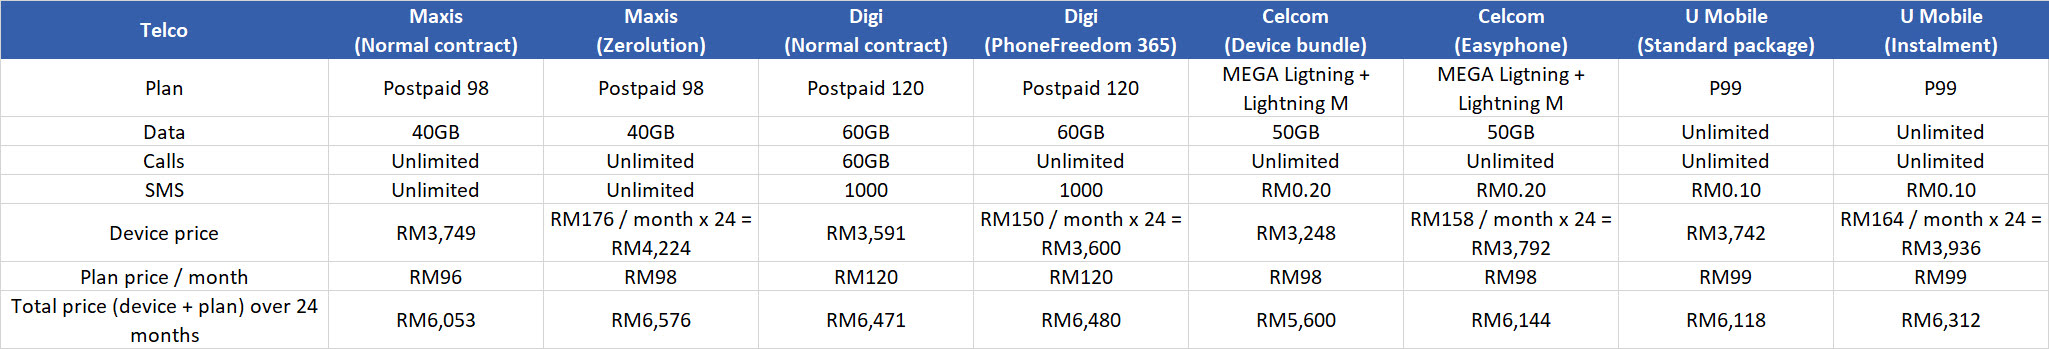 Cost of buying an iPhone 11 Pro on a plan